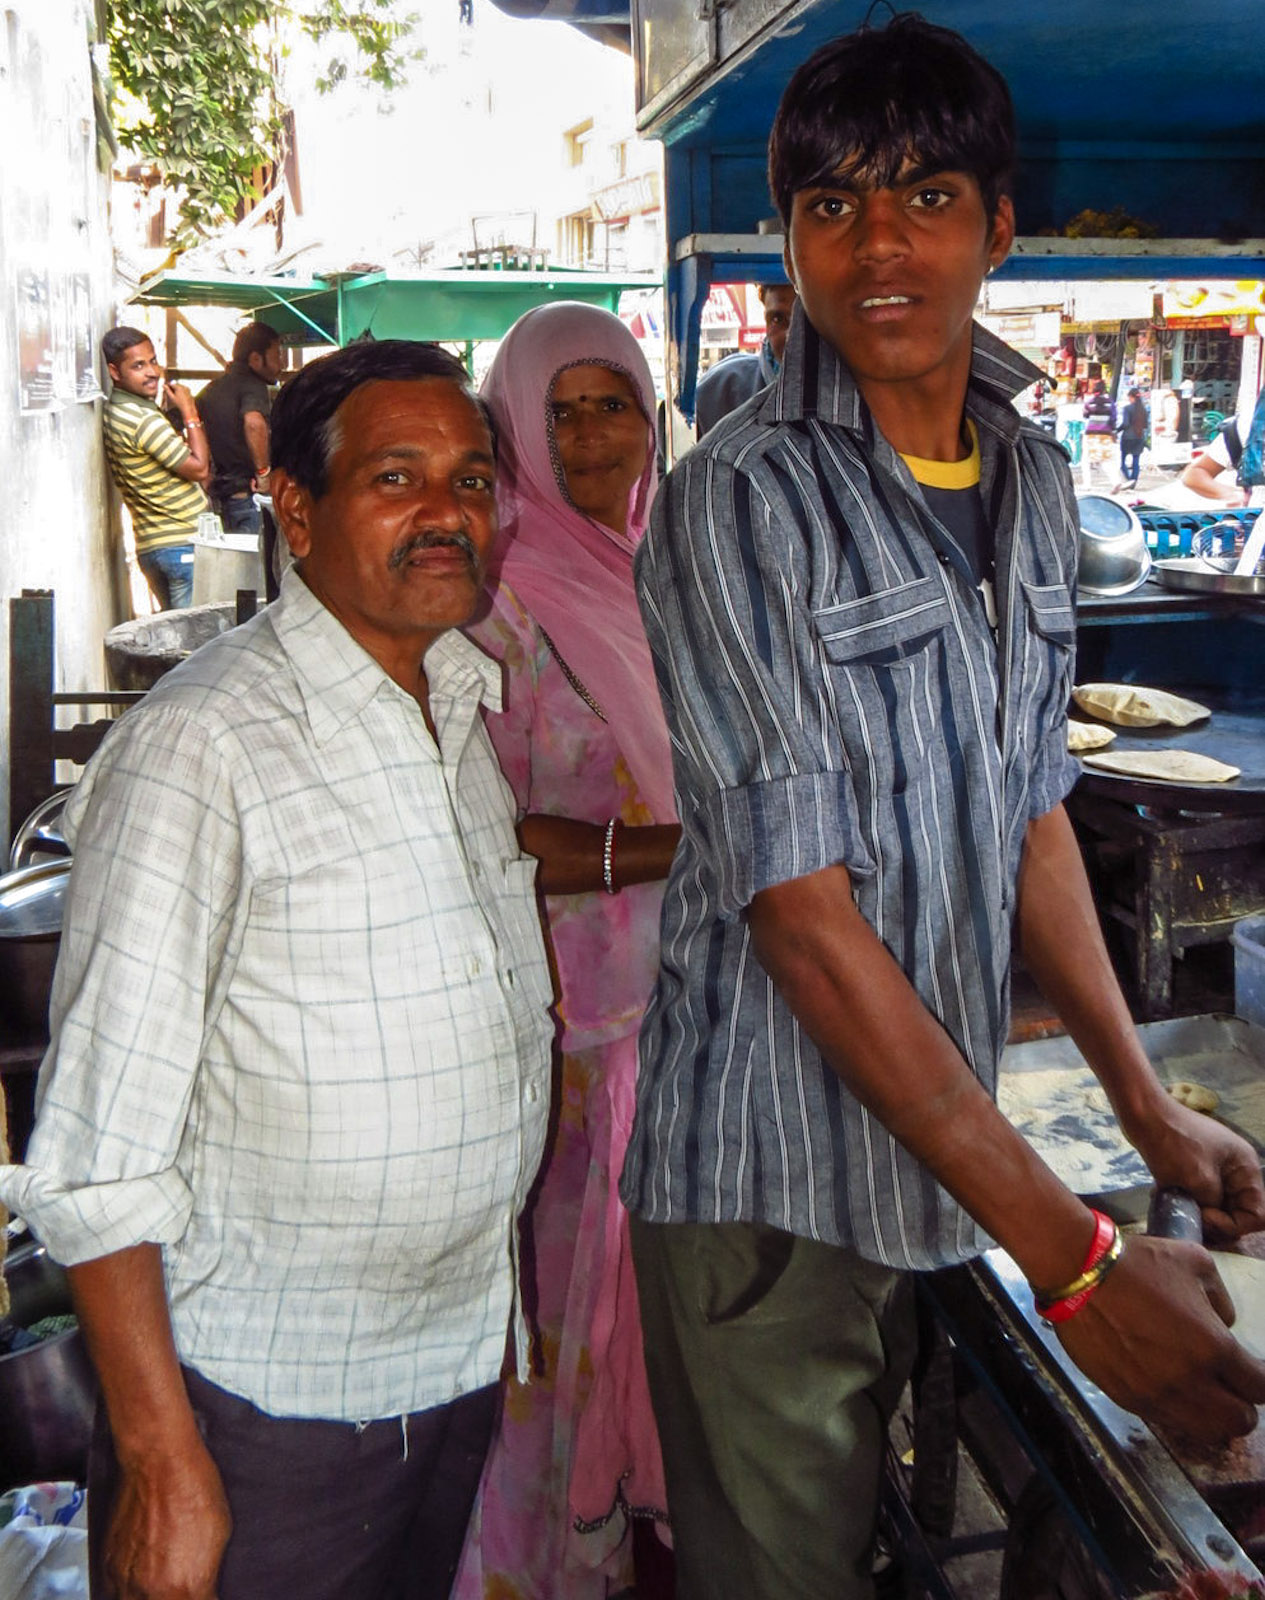 chapati-stall-family-portrait-udaipur